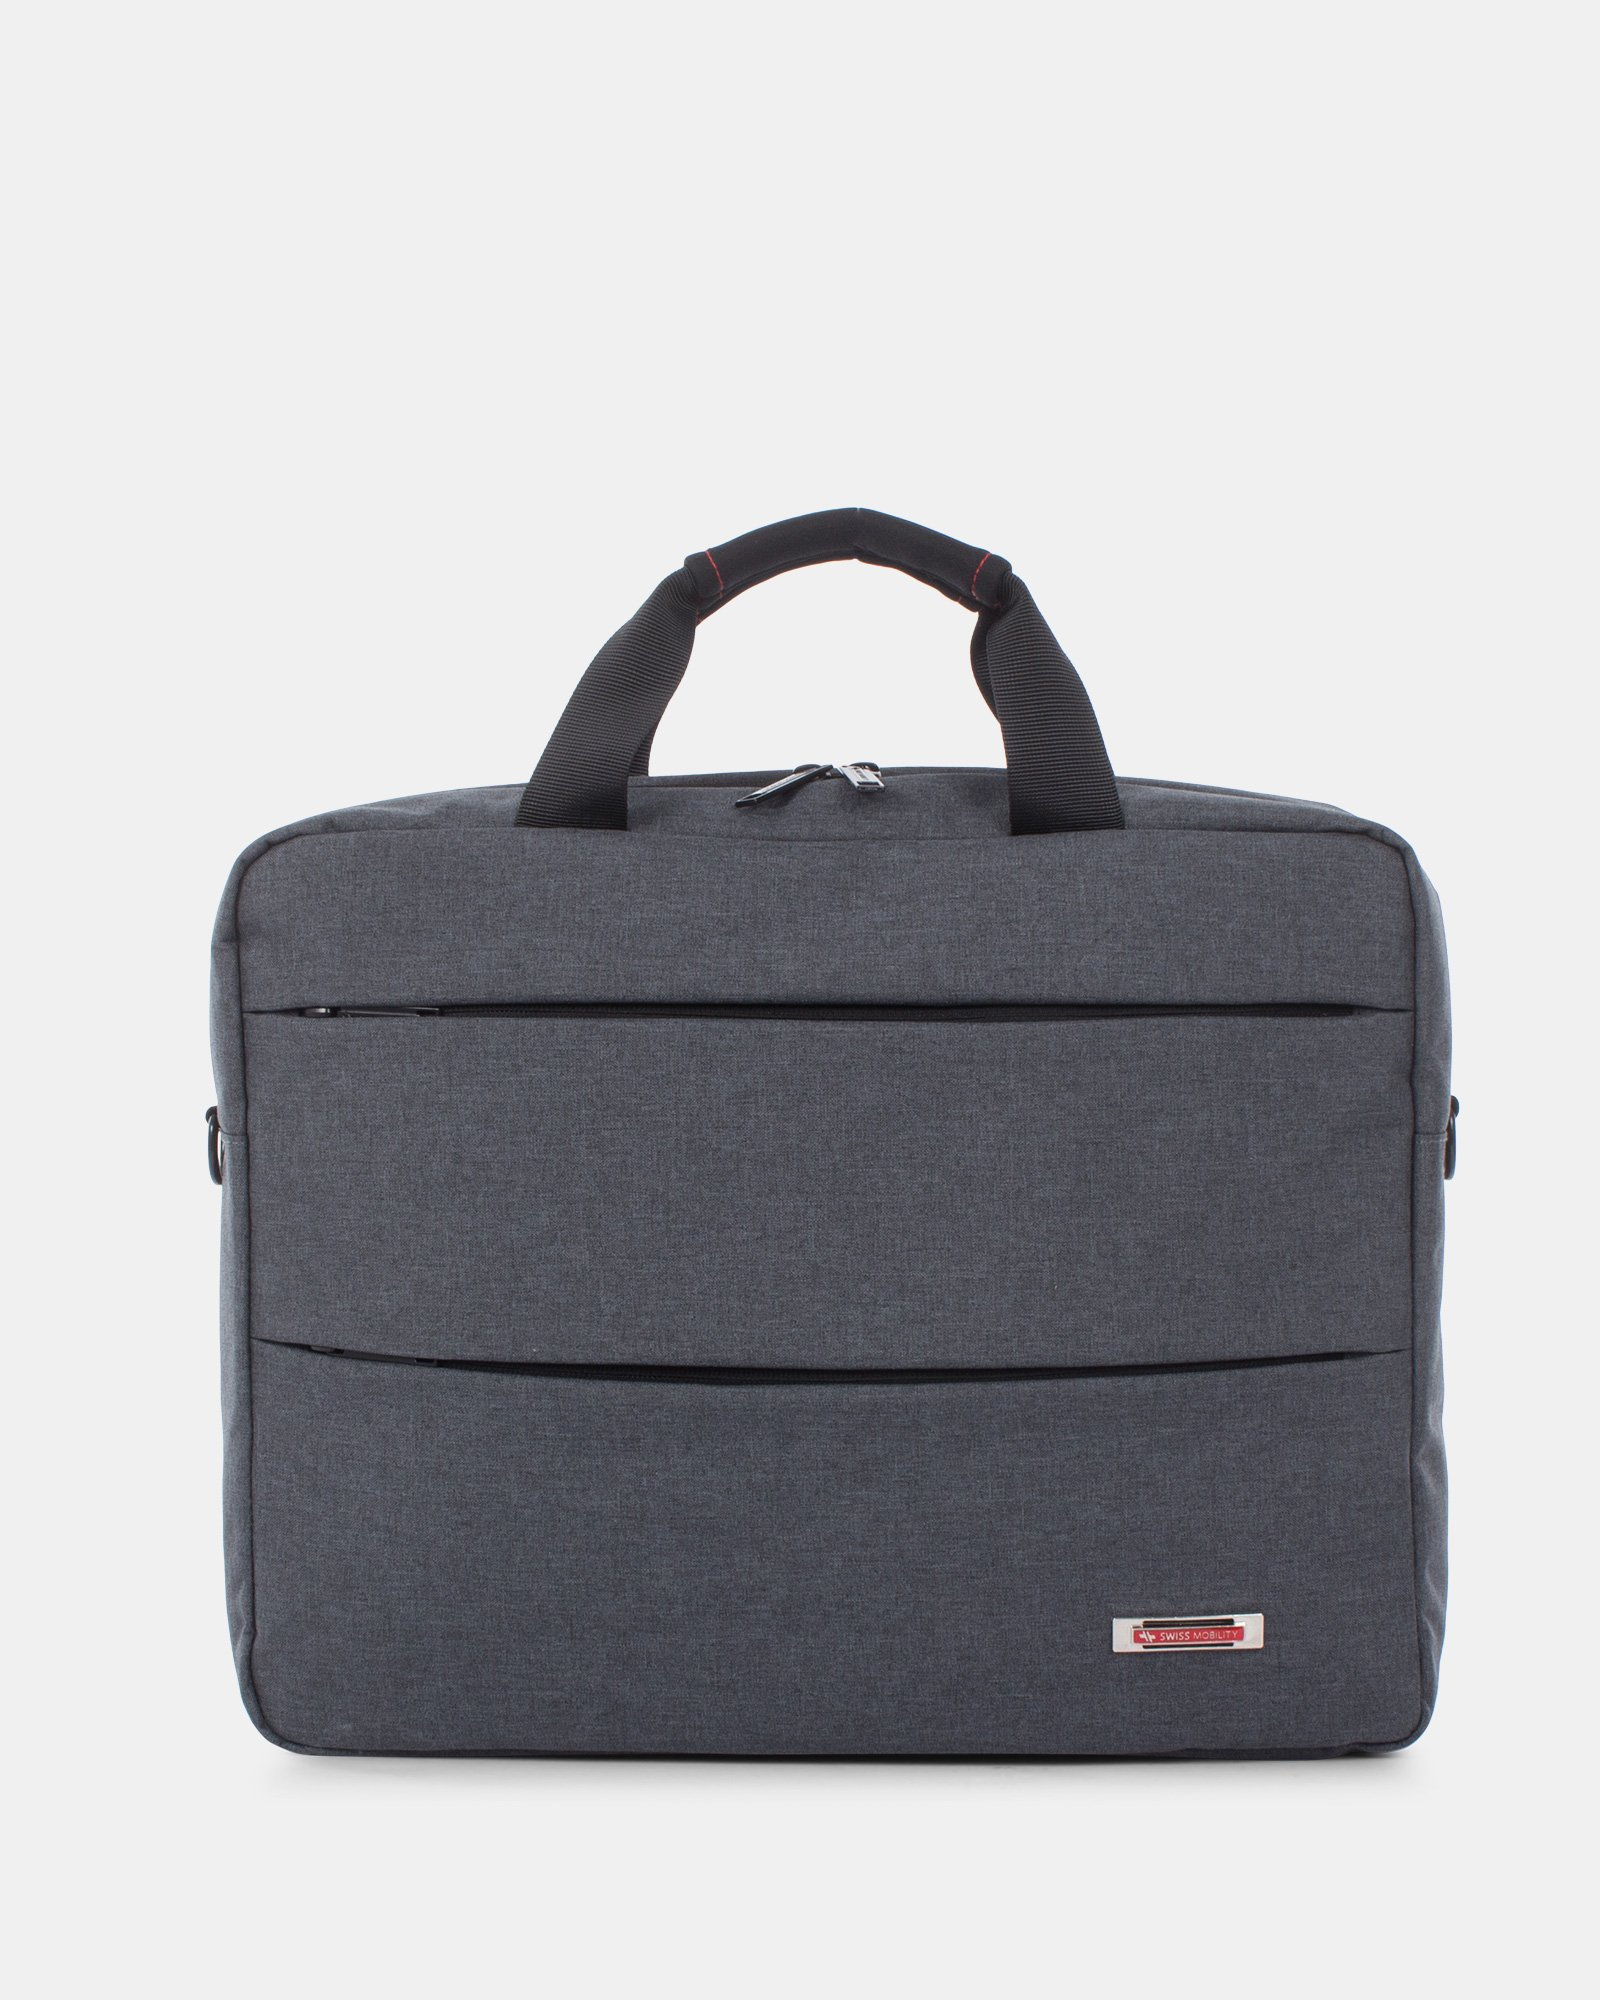 "Elevate – Soft Briefcase for 15.6"" Laptop with Adjustable and removable shoulder strap - Grey    - Swiss Mobility - Zoom"